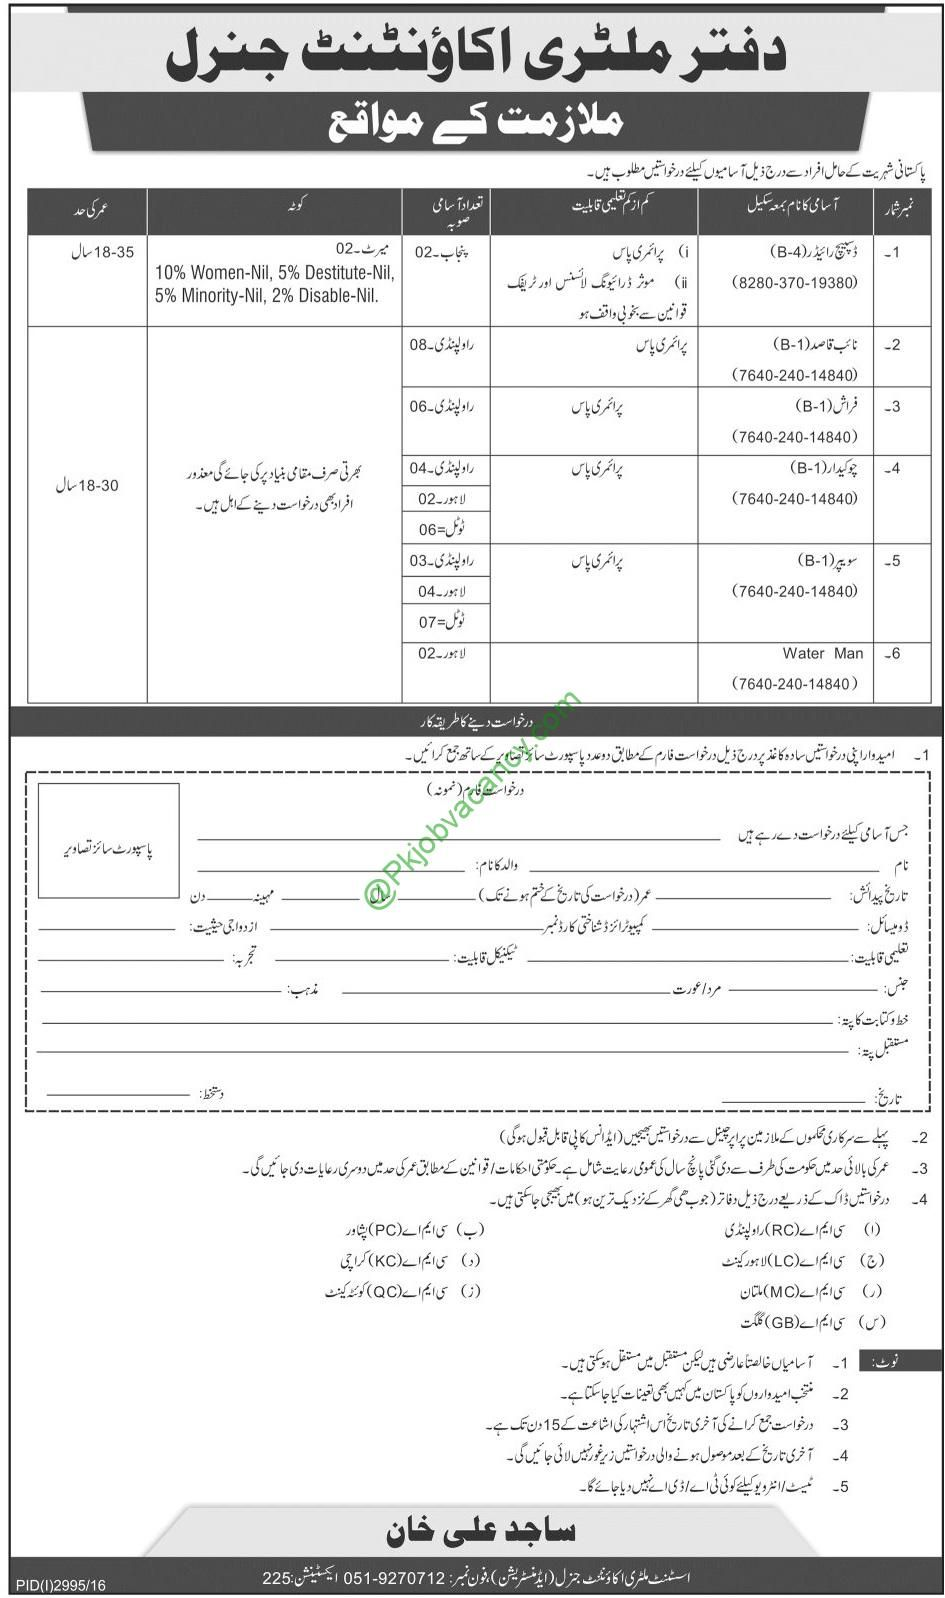 military accountant general office 2016 jobs application military accountant general office 2016 jobs application form jobs in military and offices